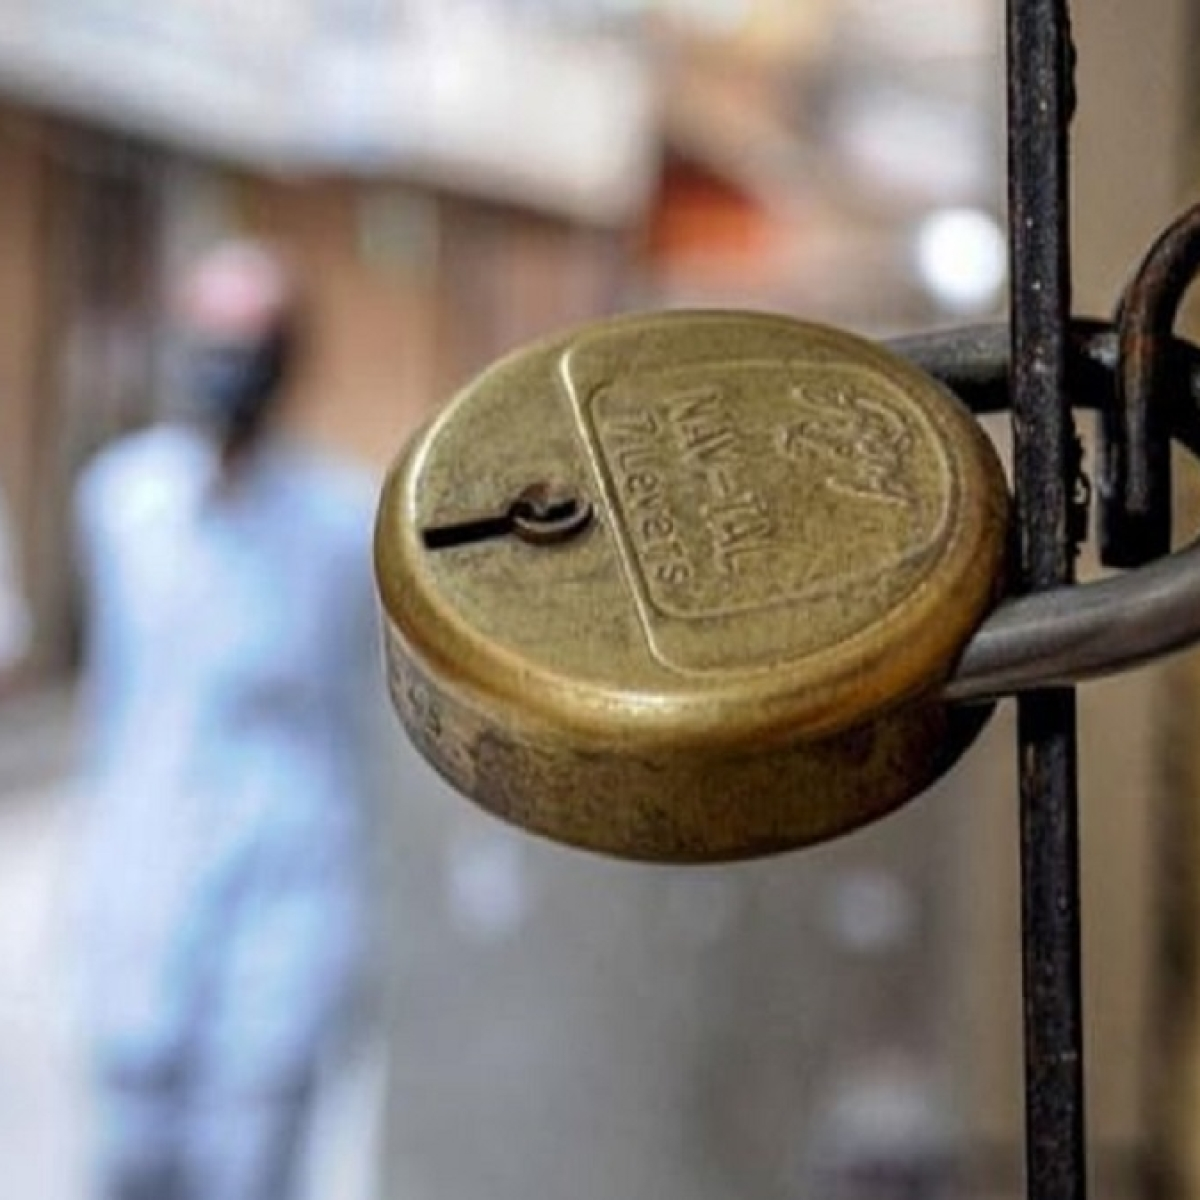 Amid rising COVID-19 cases, Bihar govt imposes lockdown till May 15